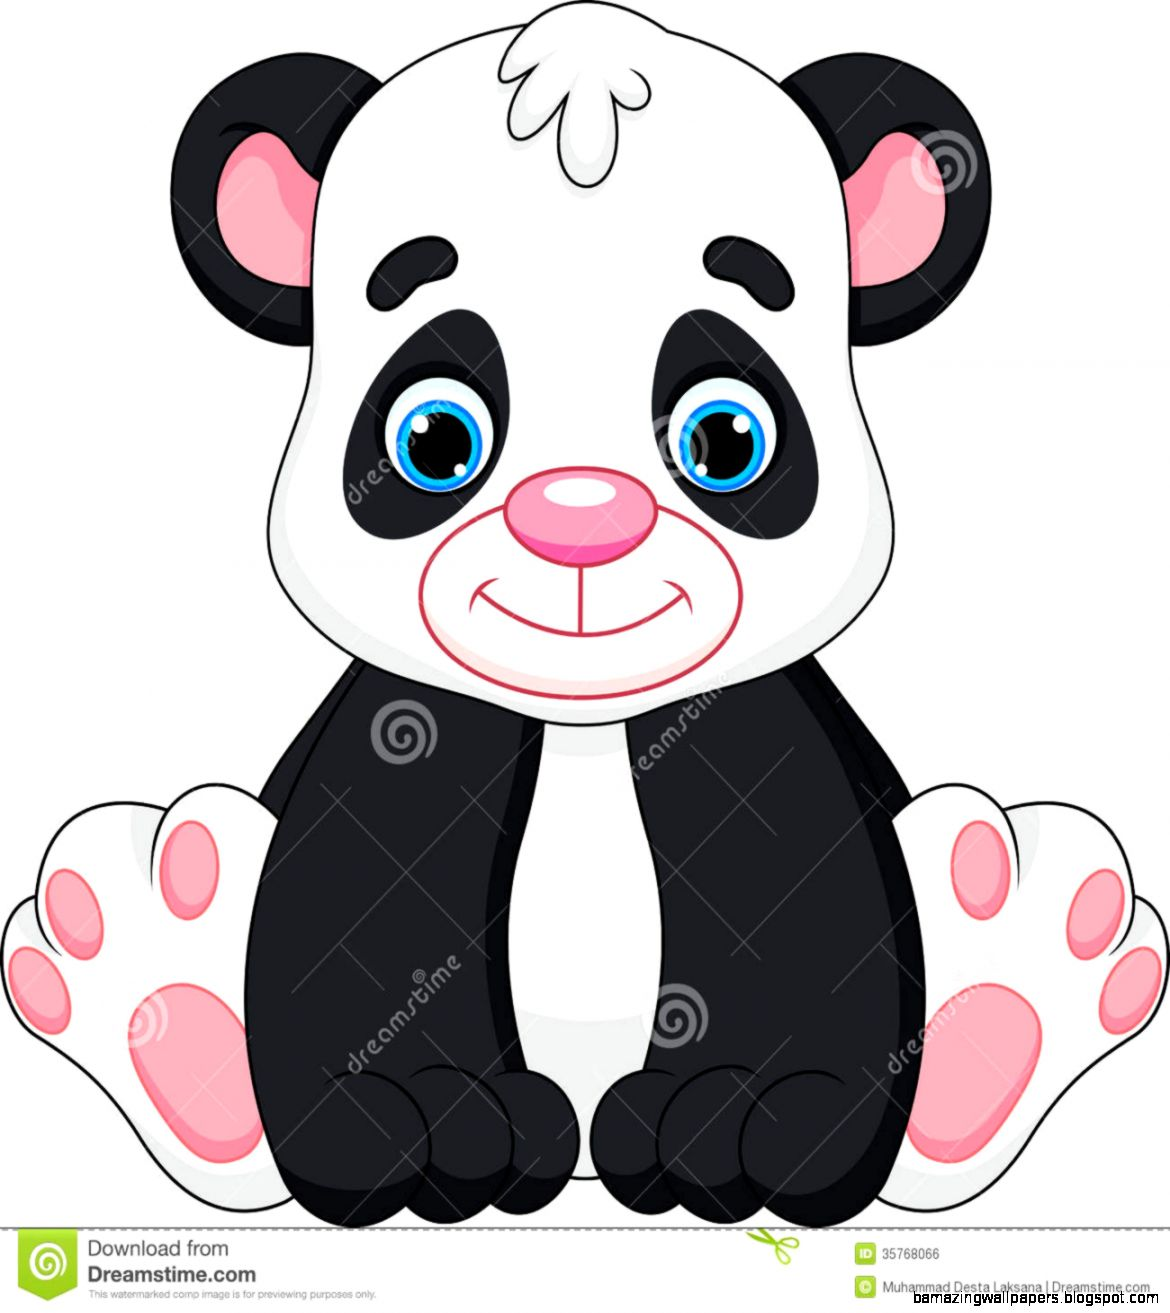 Cute Cartoon Baby Panda Hd Images 3 HD Wallpapers